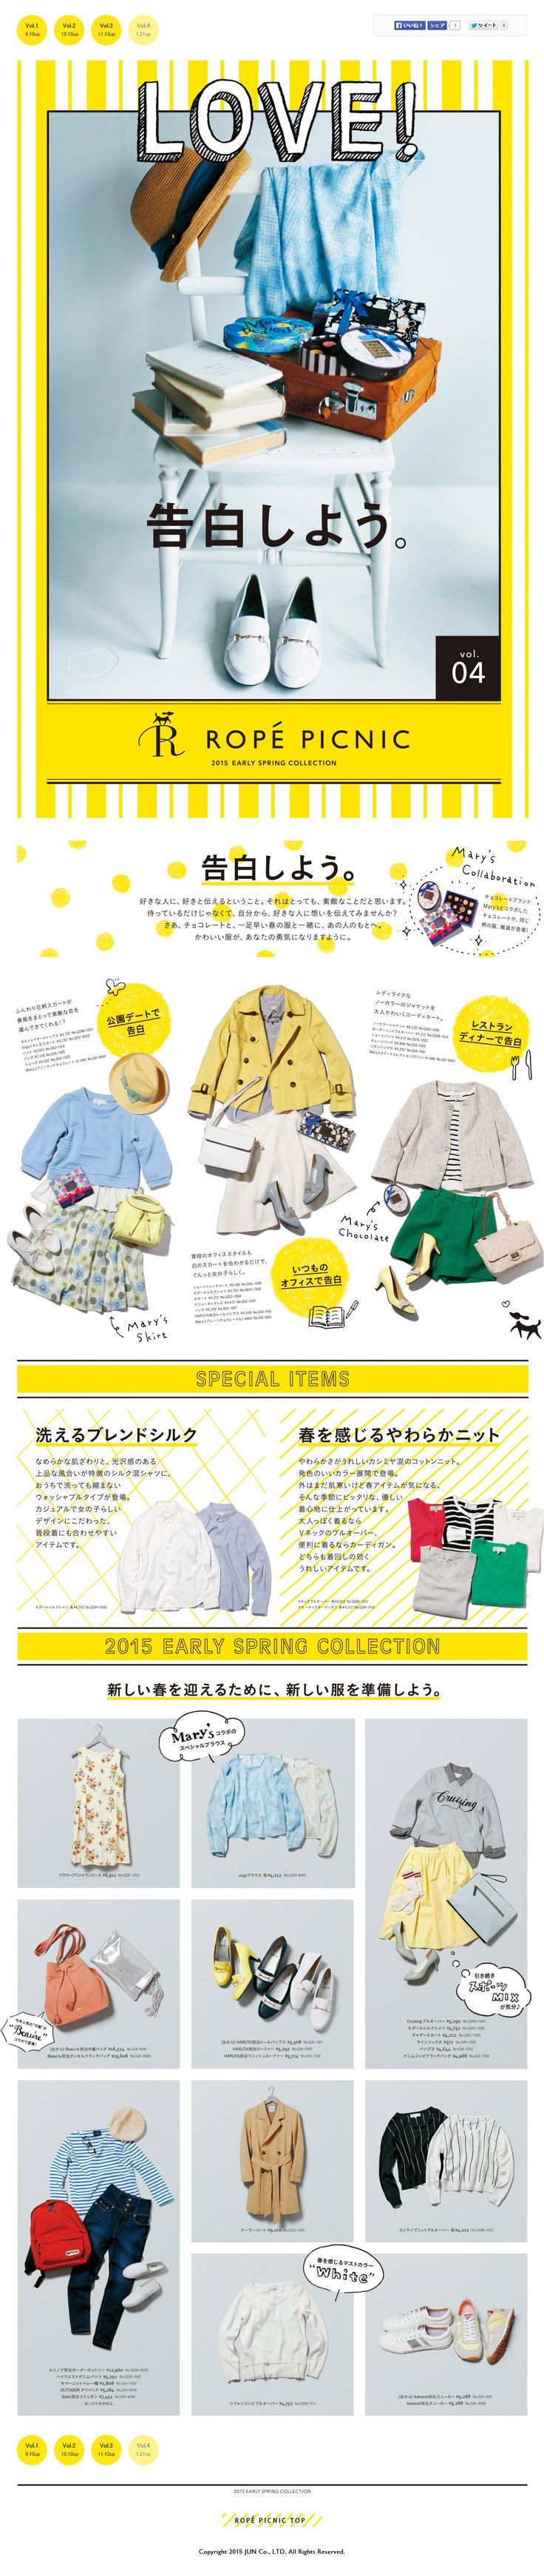 2015 EARLY SPRING COLLECTION SANKOU!